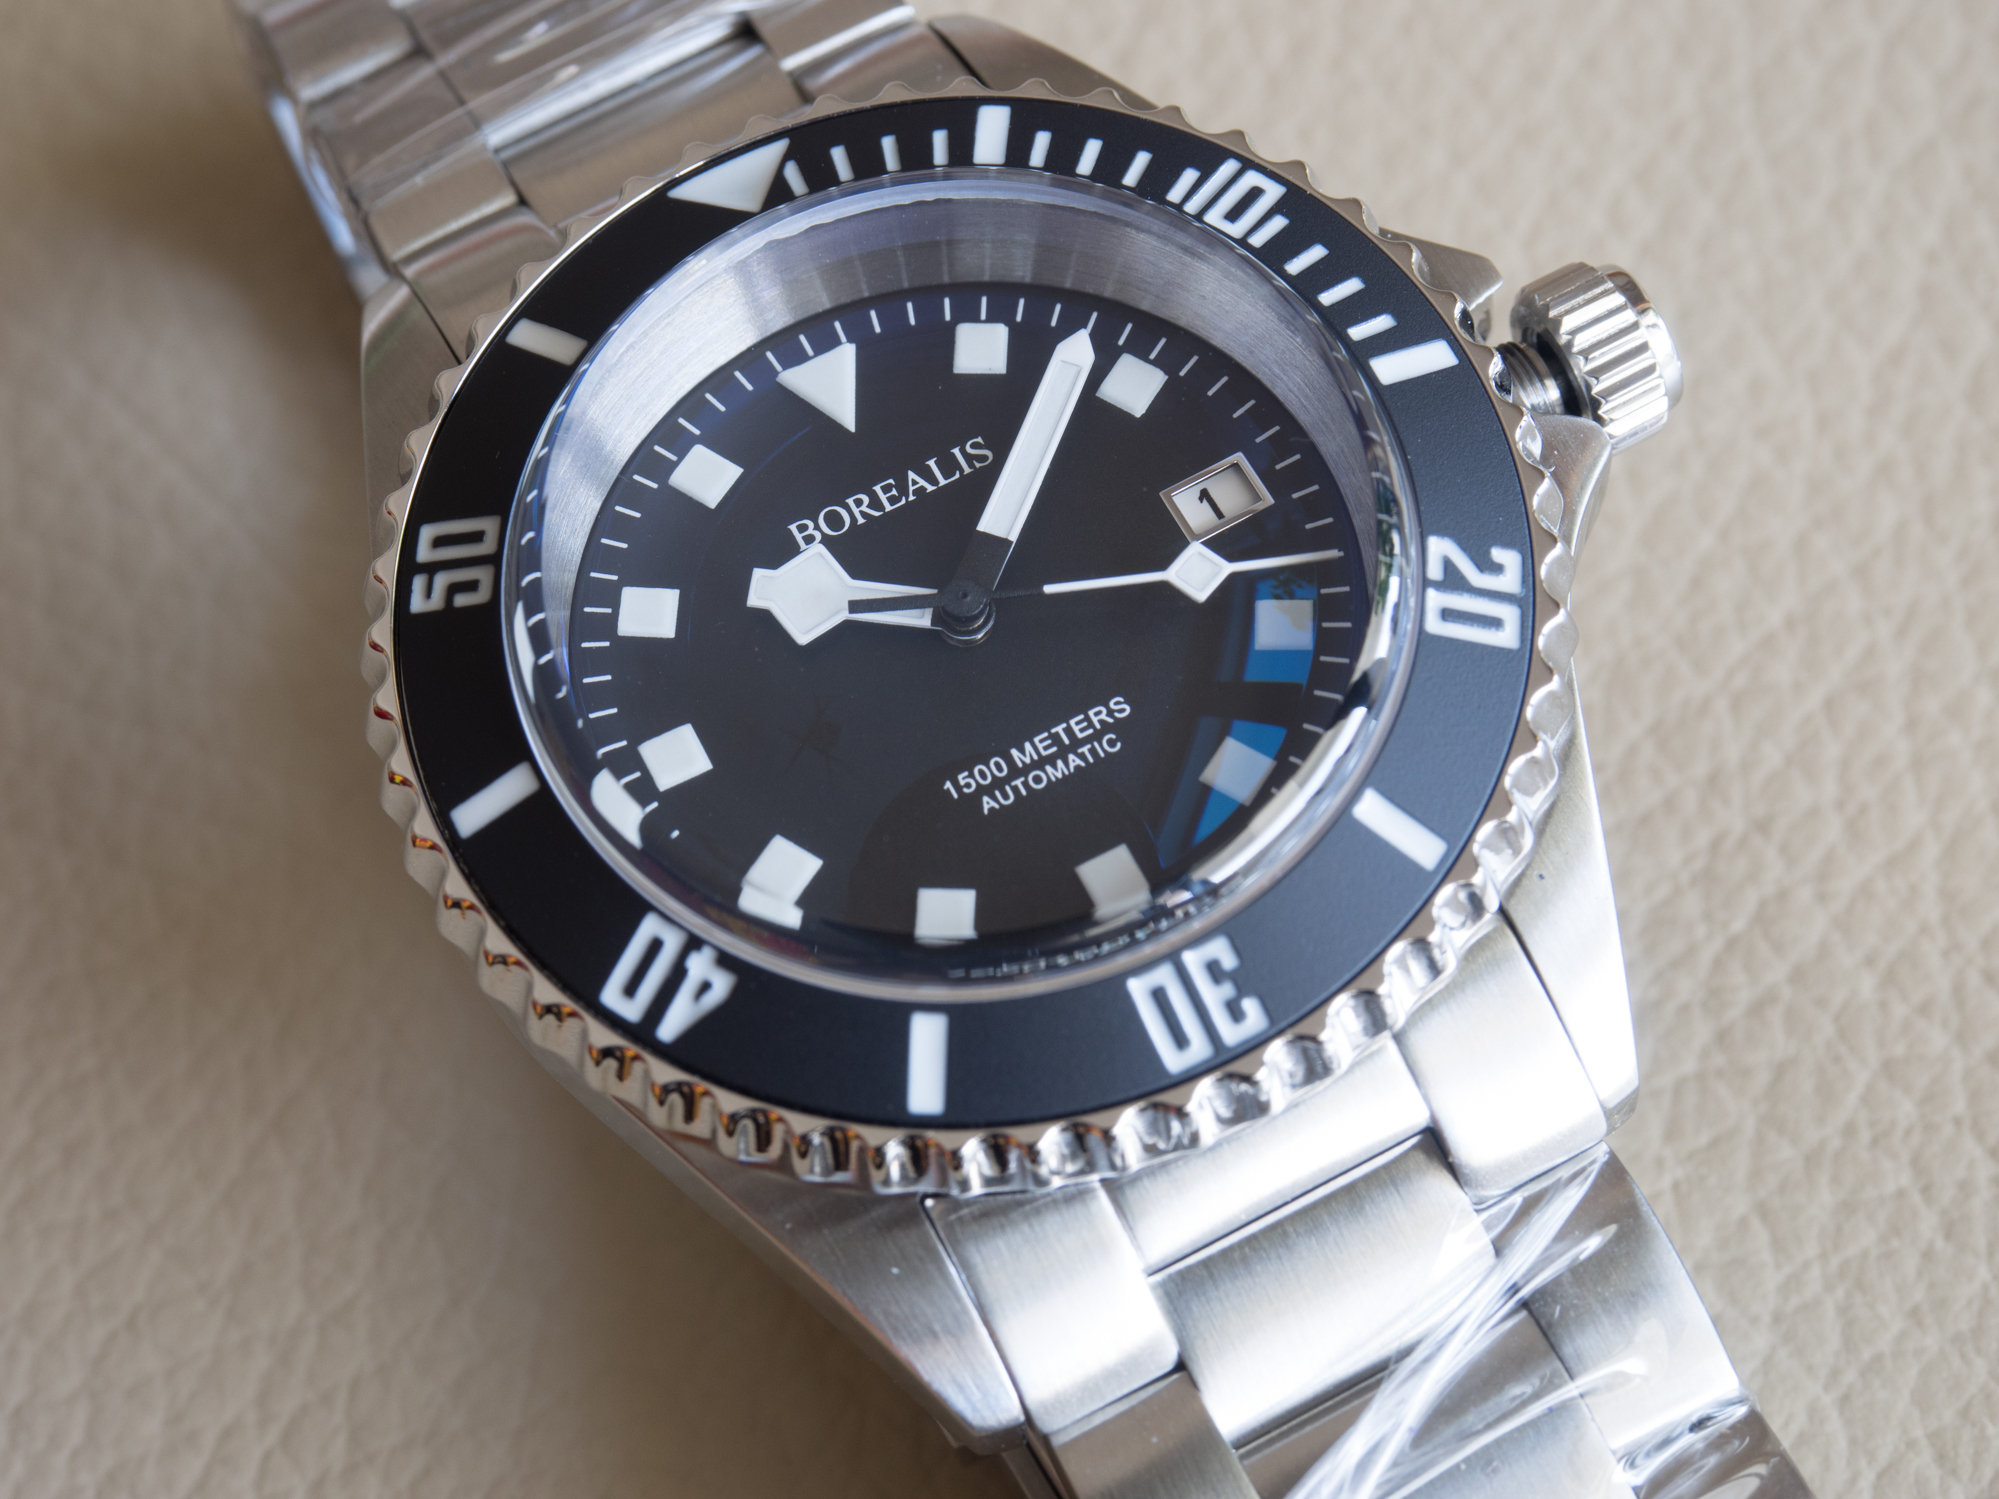 Borealis Sea Hawk 1500m Automatic Diver Watch Seiko NH36 / 4R36 Ceramic Black Bezel Black Dial BSH1500BLACK